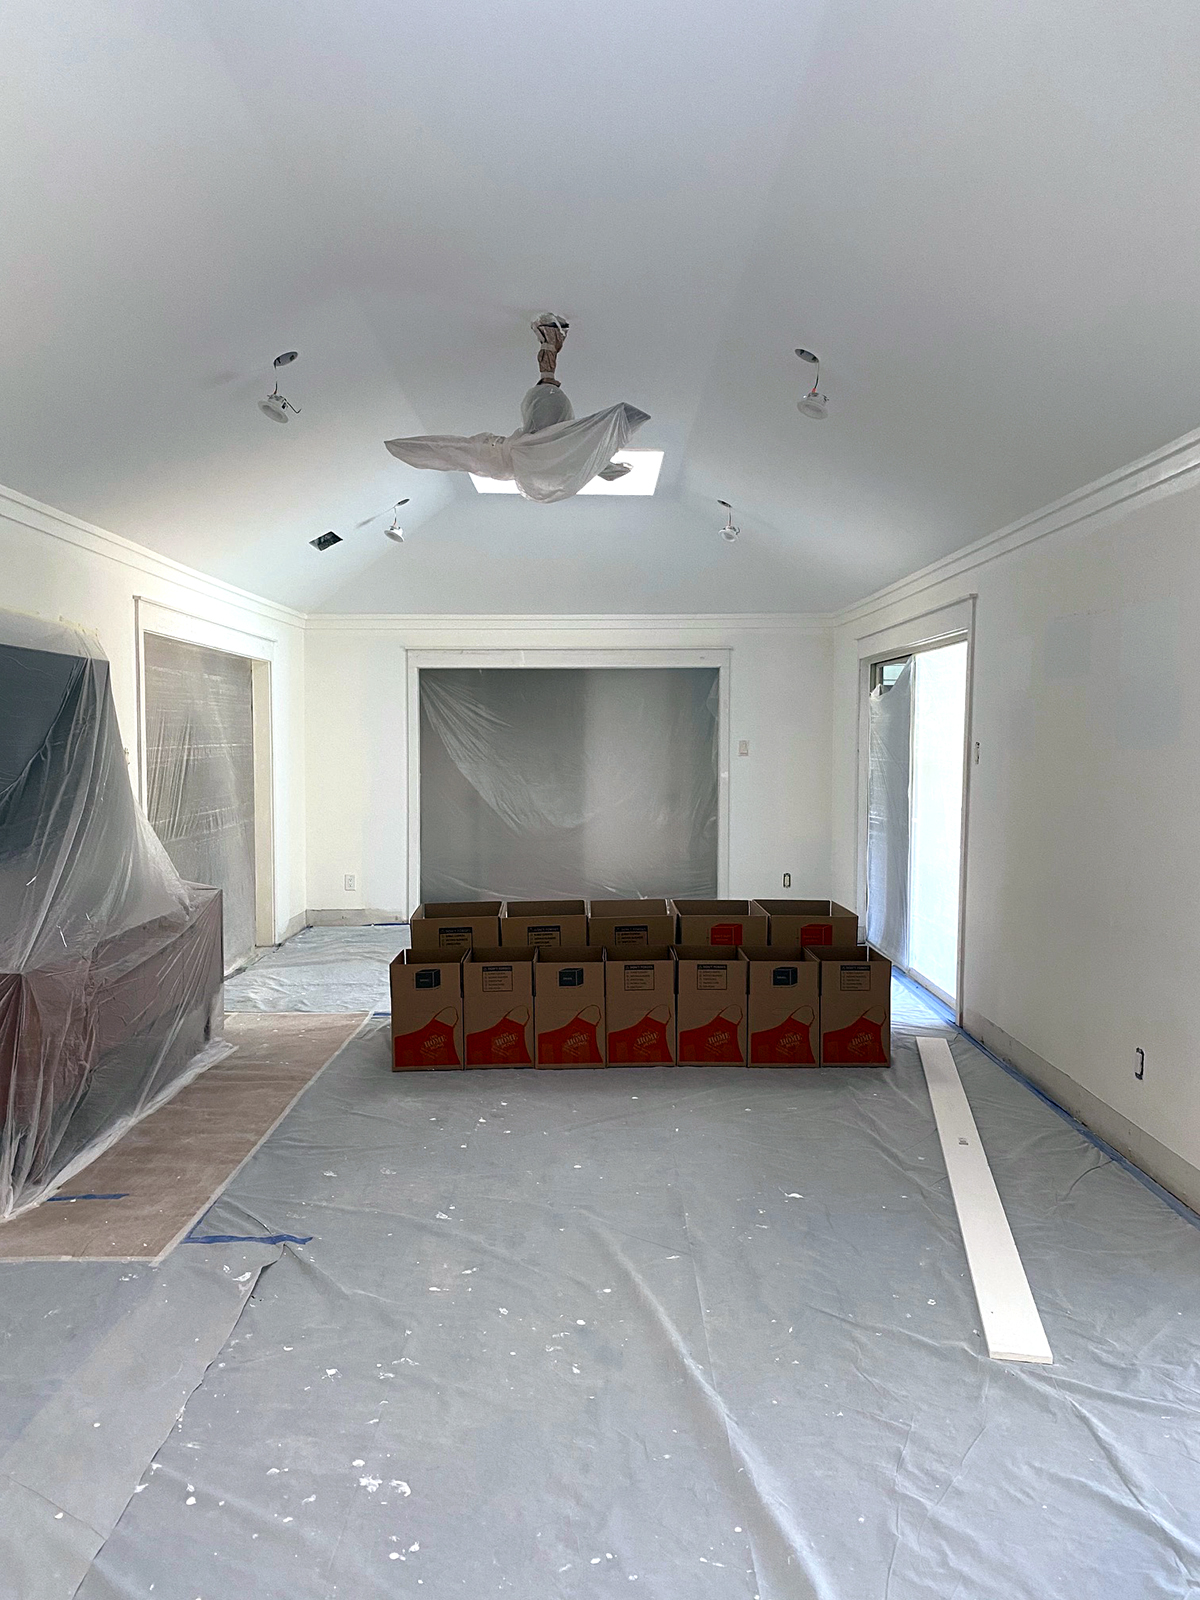 Living Room - getting close